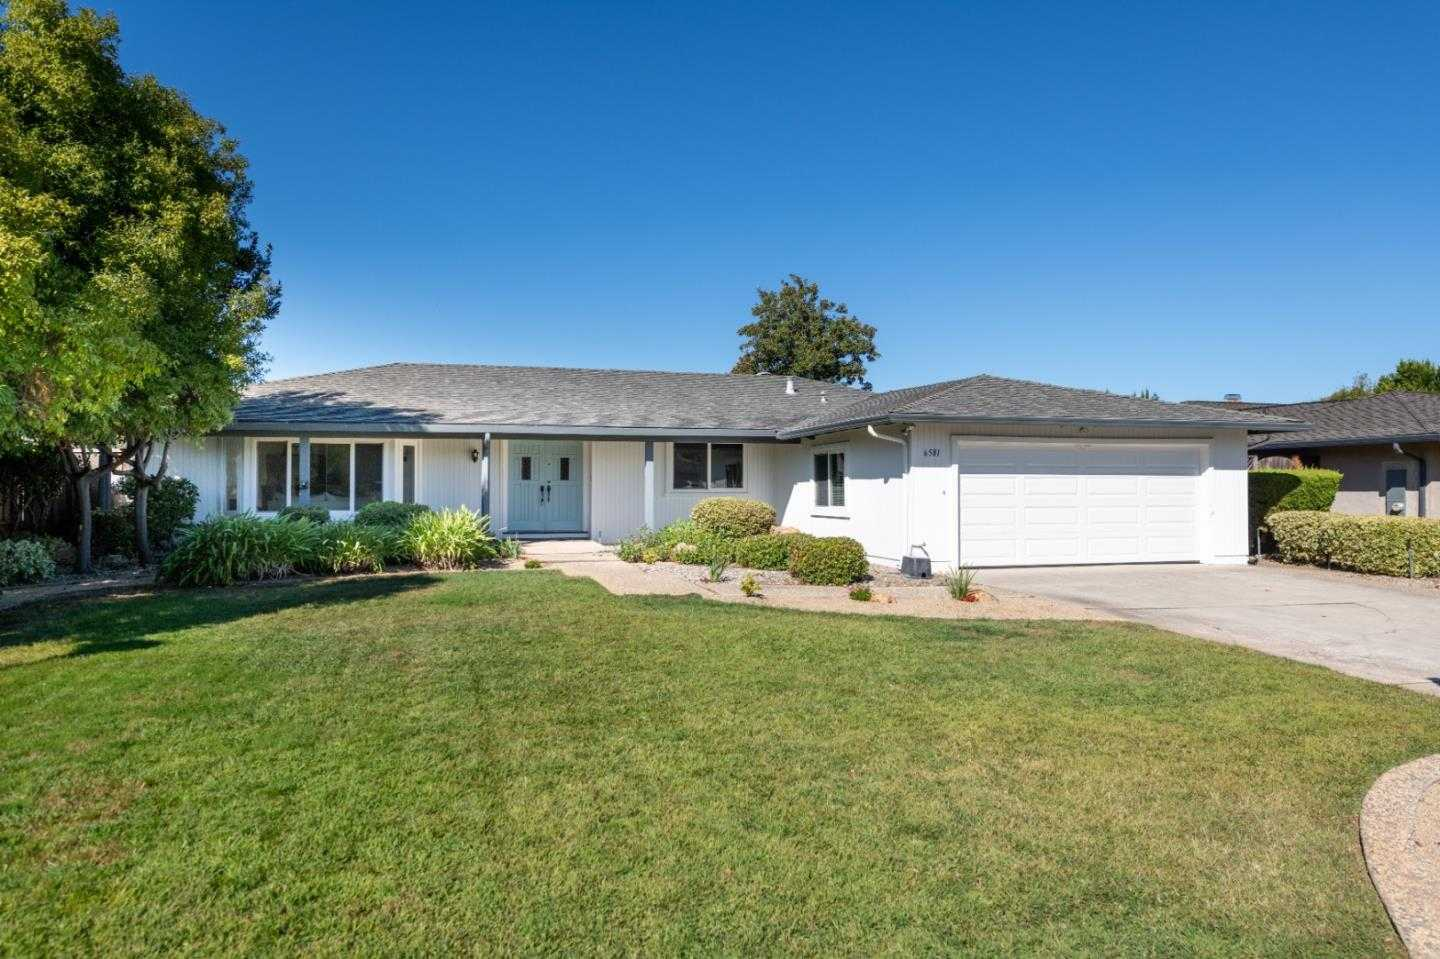 $1,549,000 - 4Br/2Ba -  for Sale in San Jose